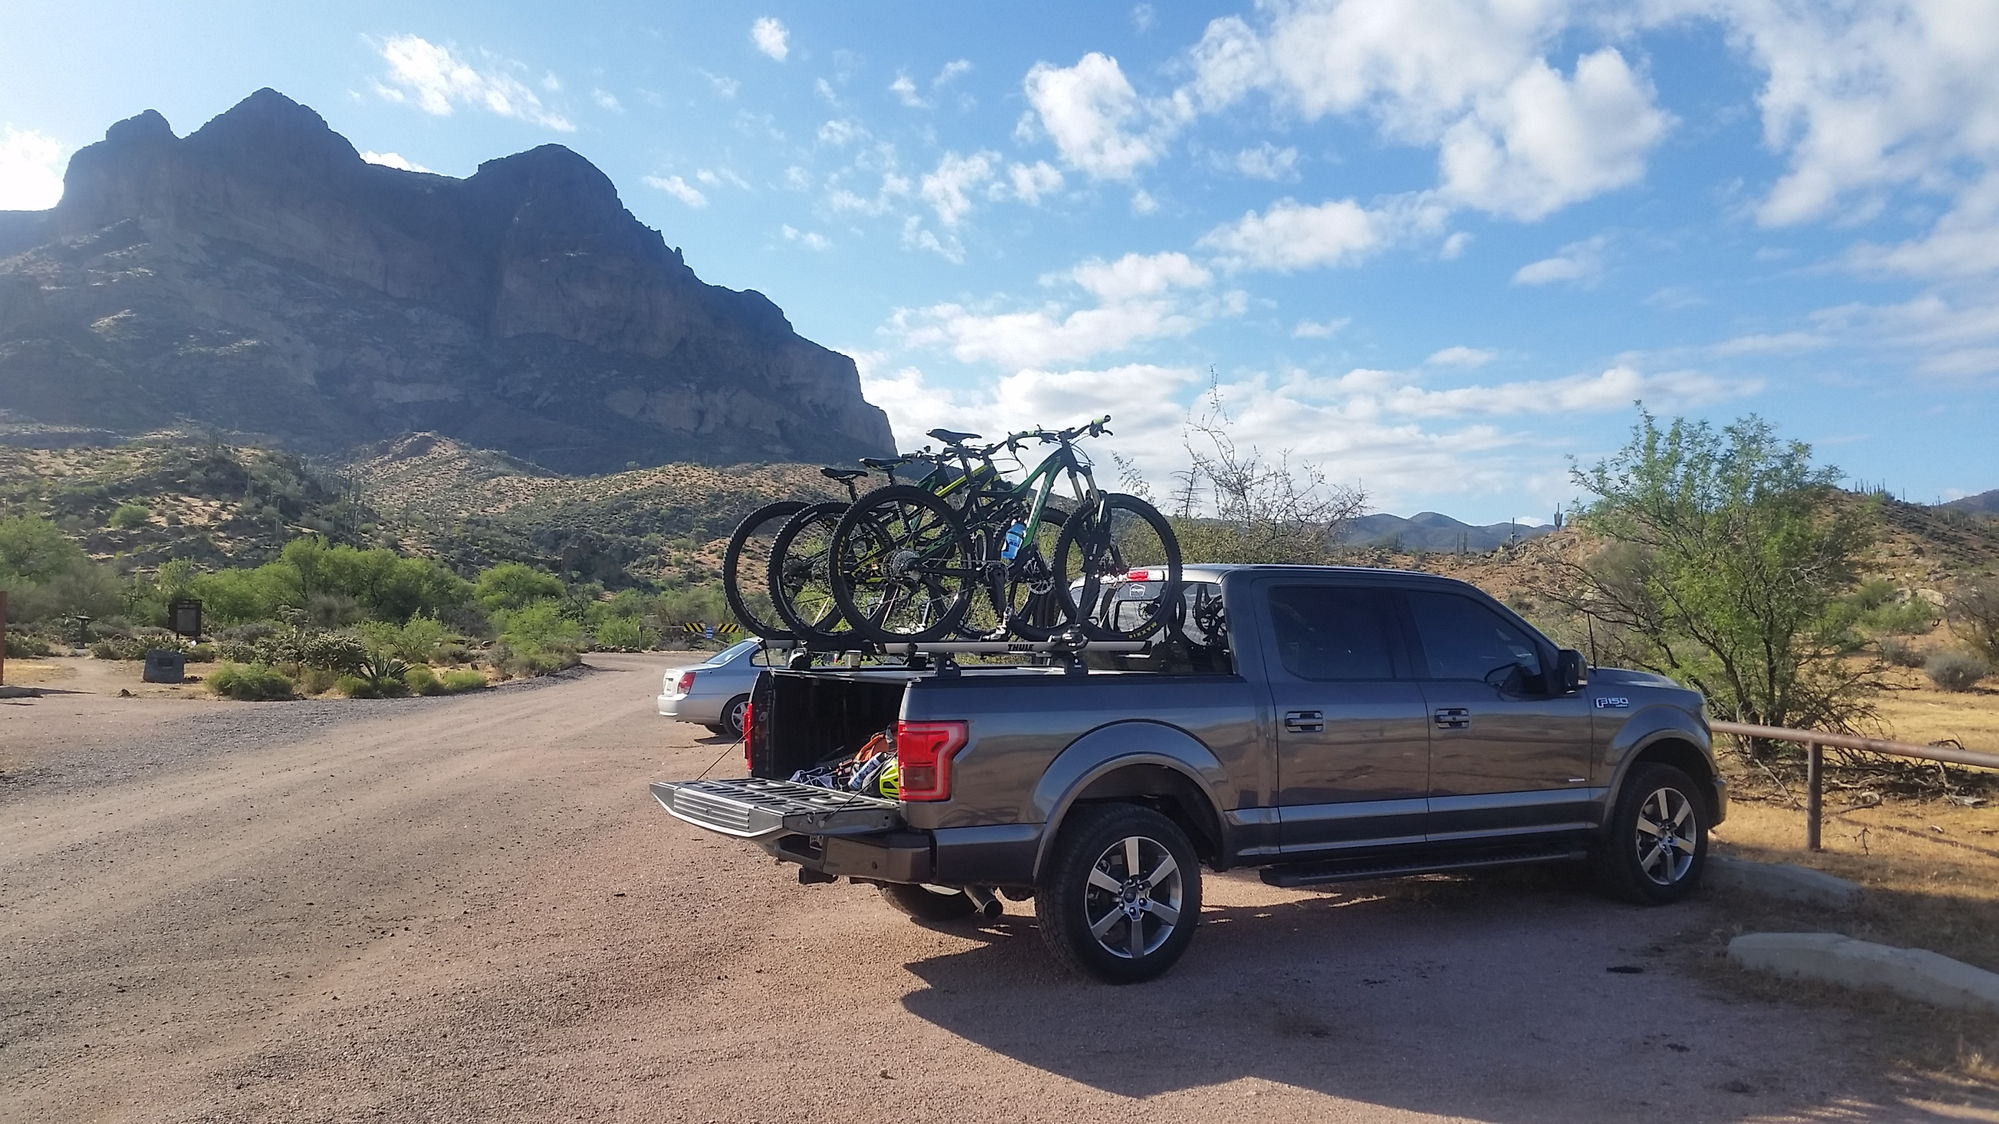 Ford F150 Rack >> Hard Shell Bed Cover and Yakima Roof Rack - Ford F150 Forum - Community of Ford Truck Fans